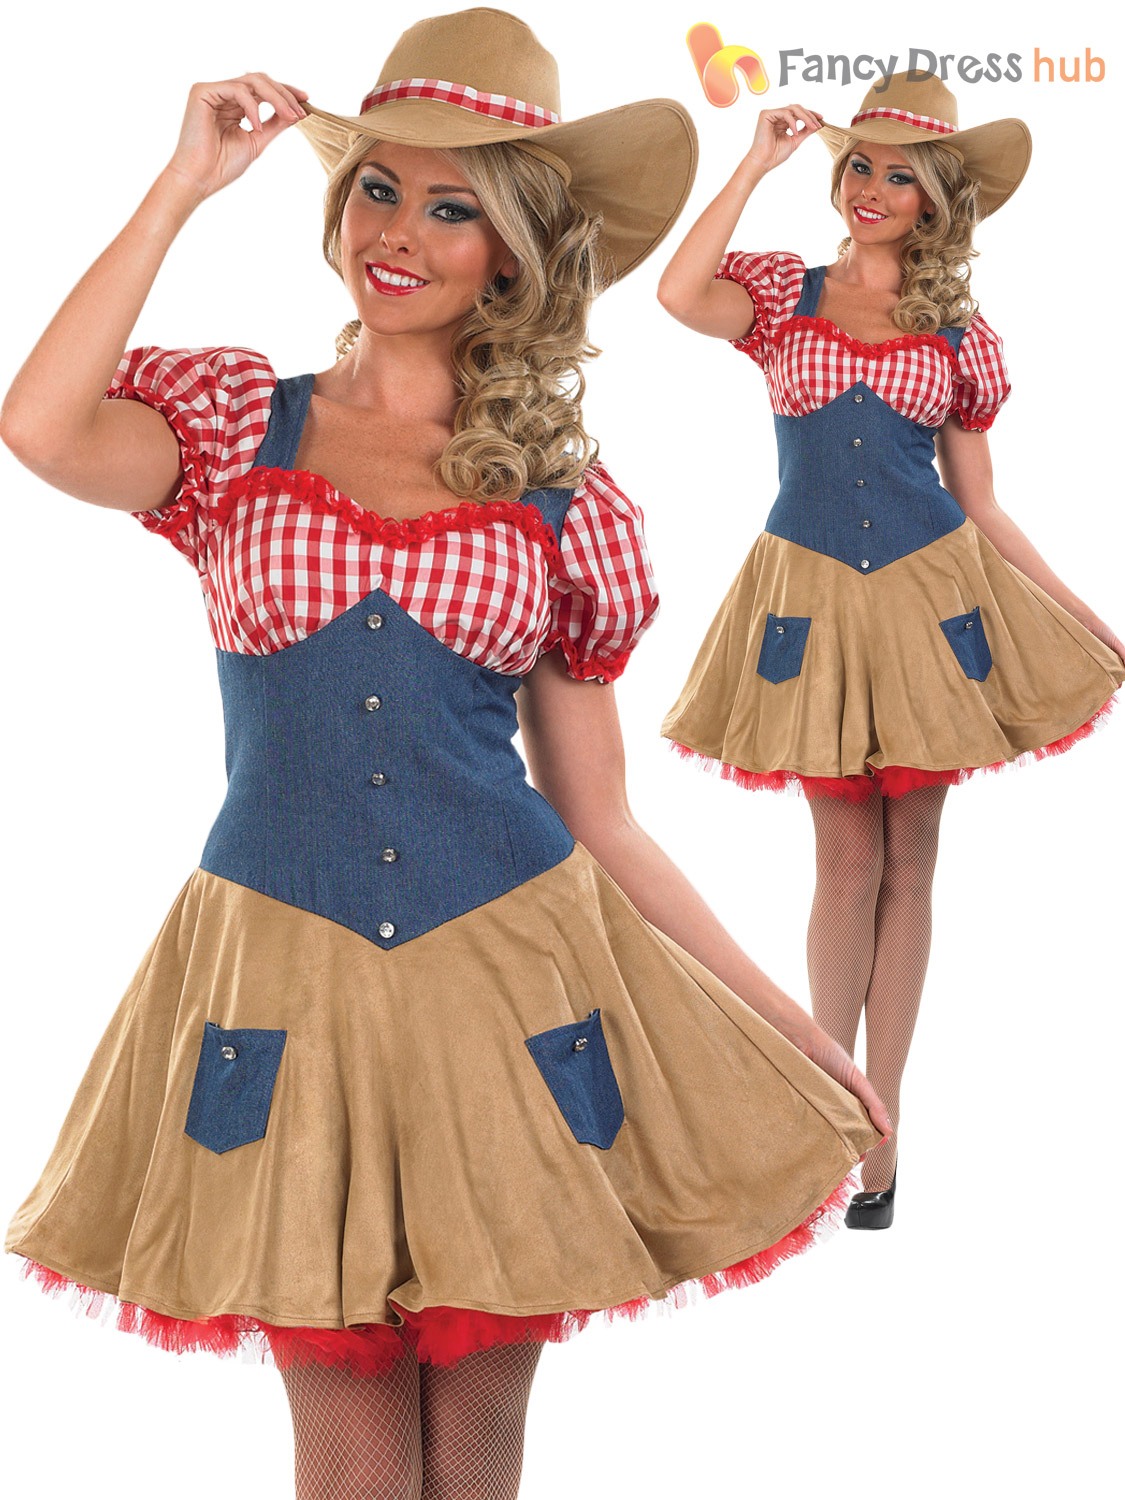 Hat Dolly Parton Pink Womens Hen Party Fancy Dress Ladies Cowgirl Costume